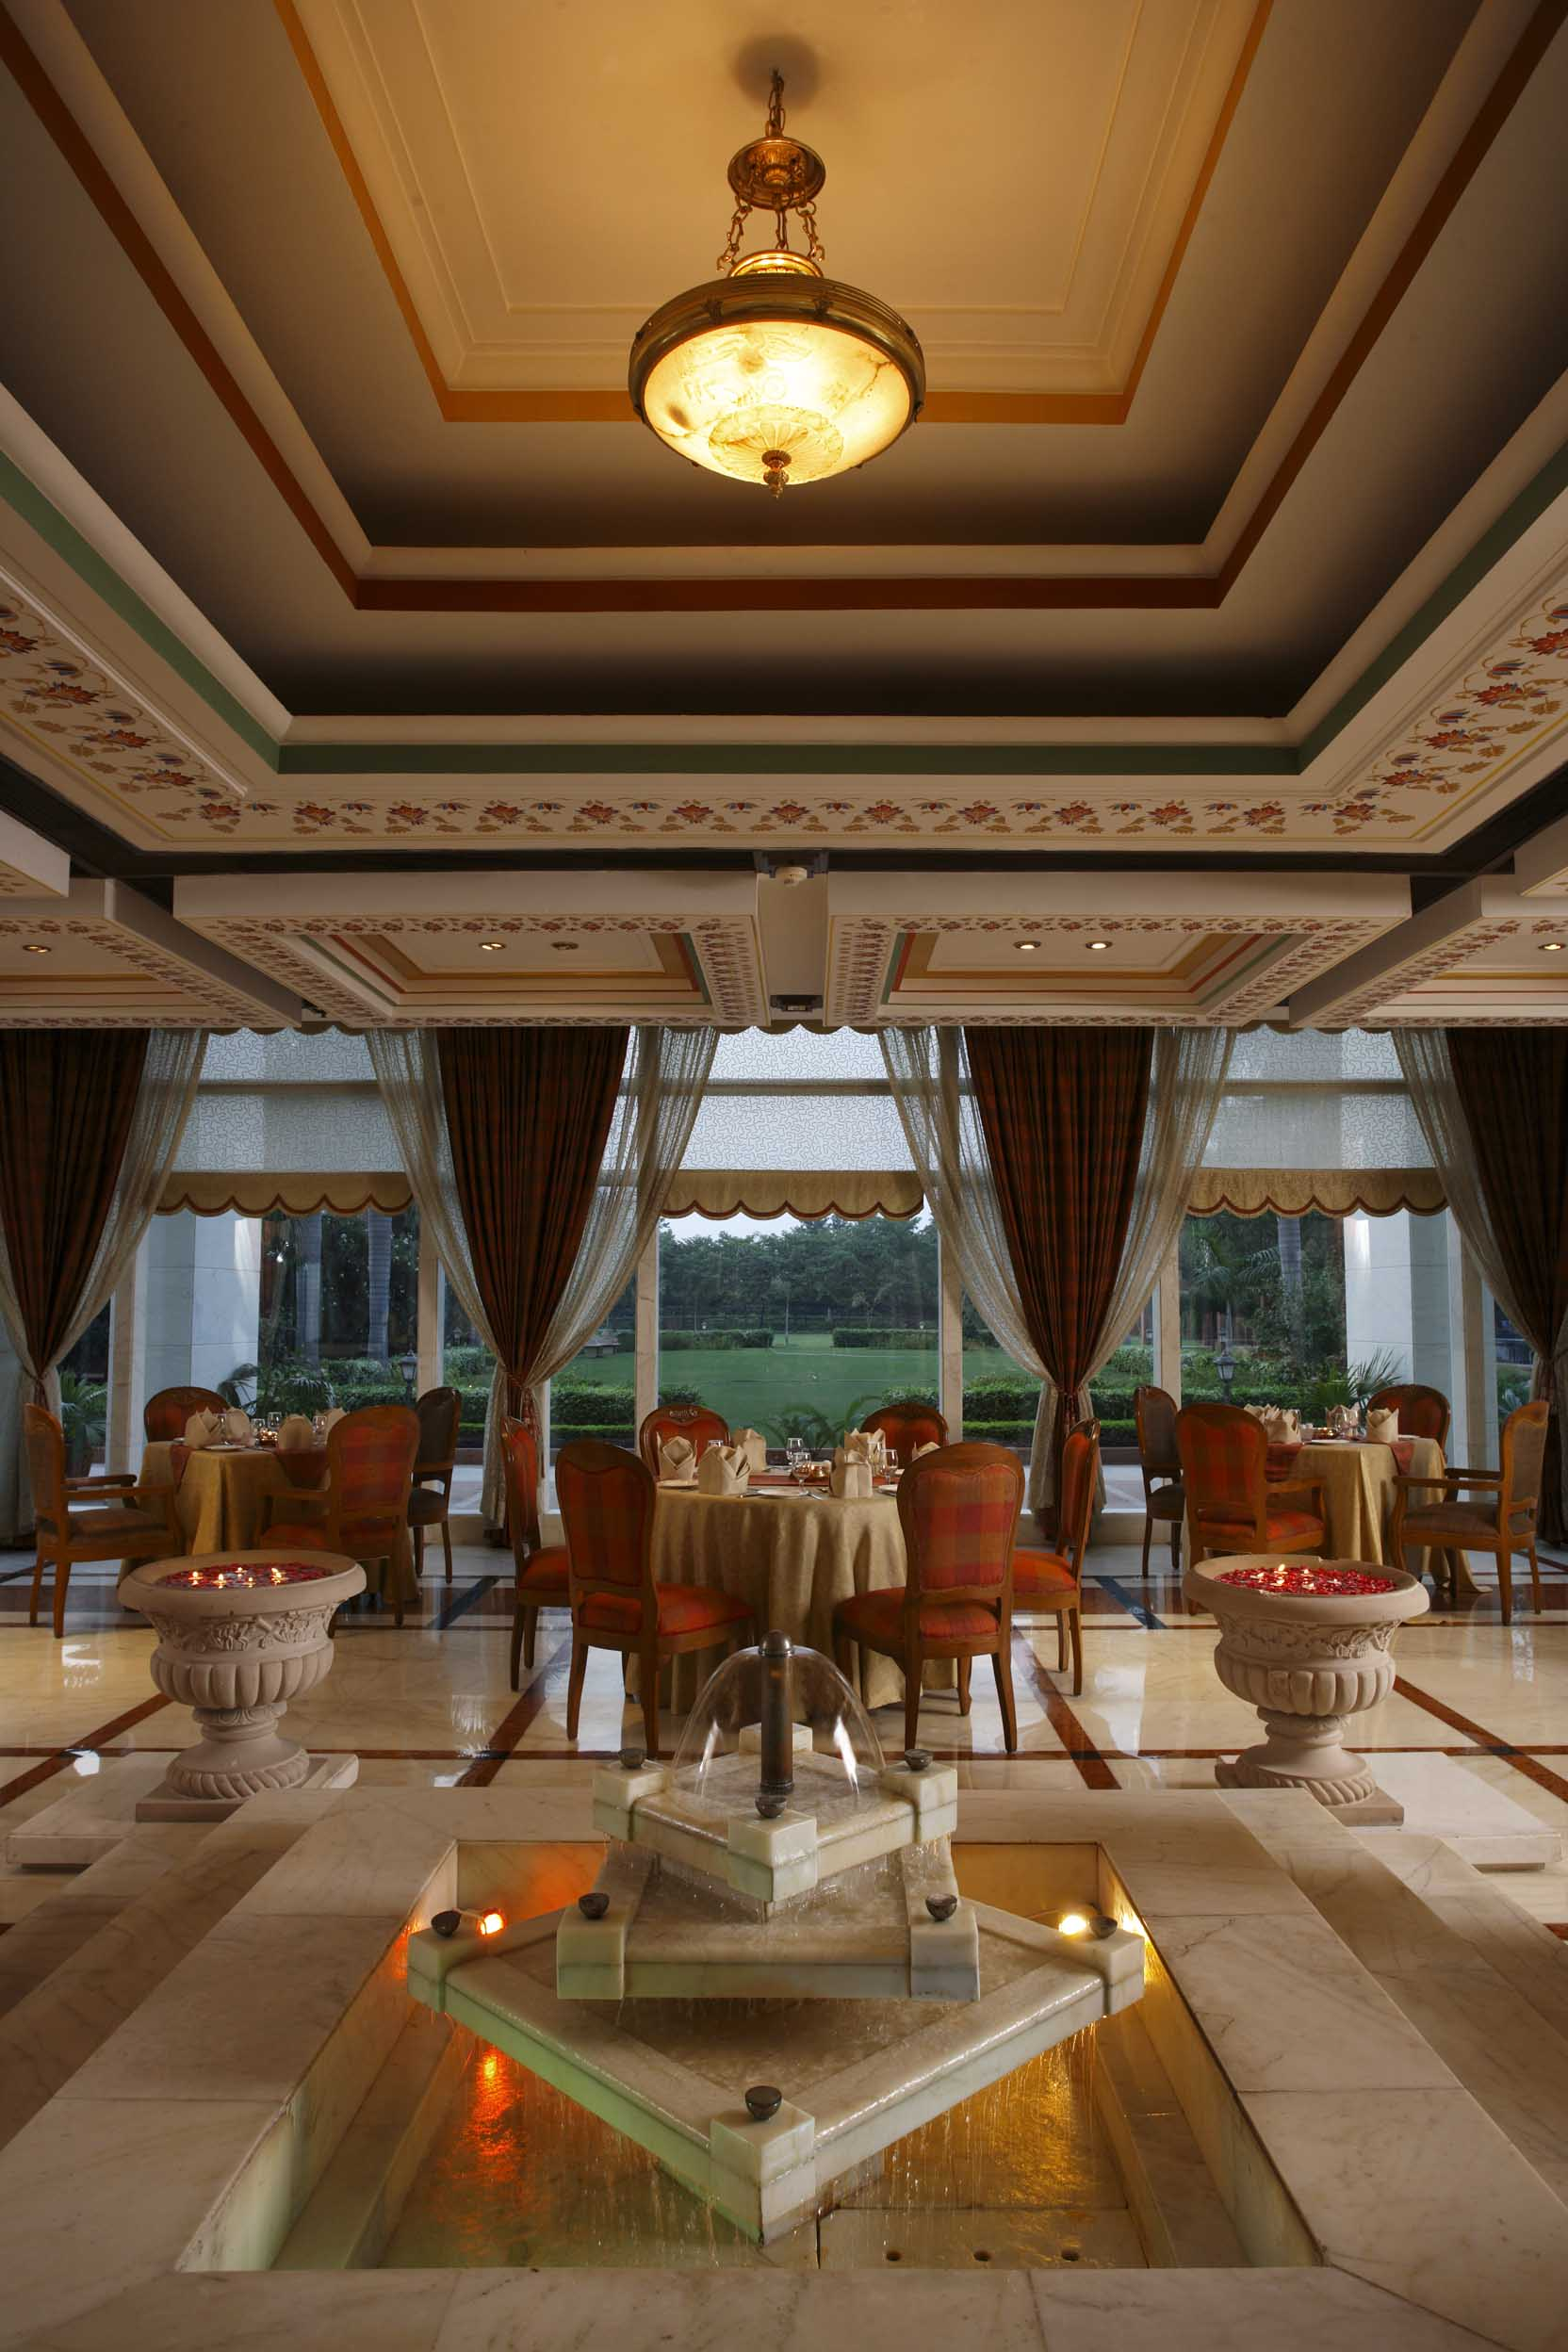 Hotel review jaypee palace hotel agra utter pradesh for Agra fine indian cuisine